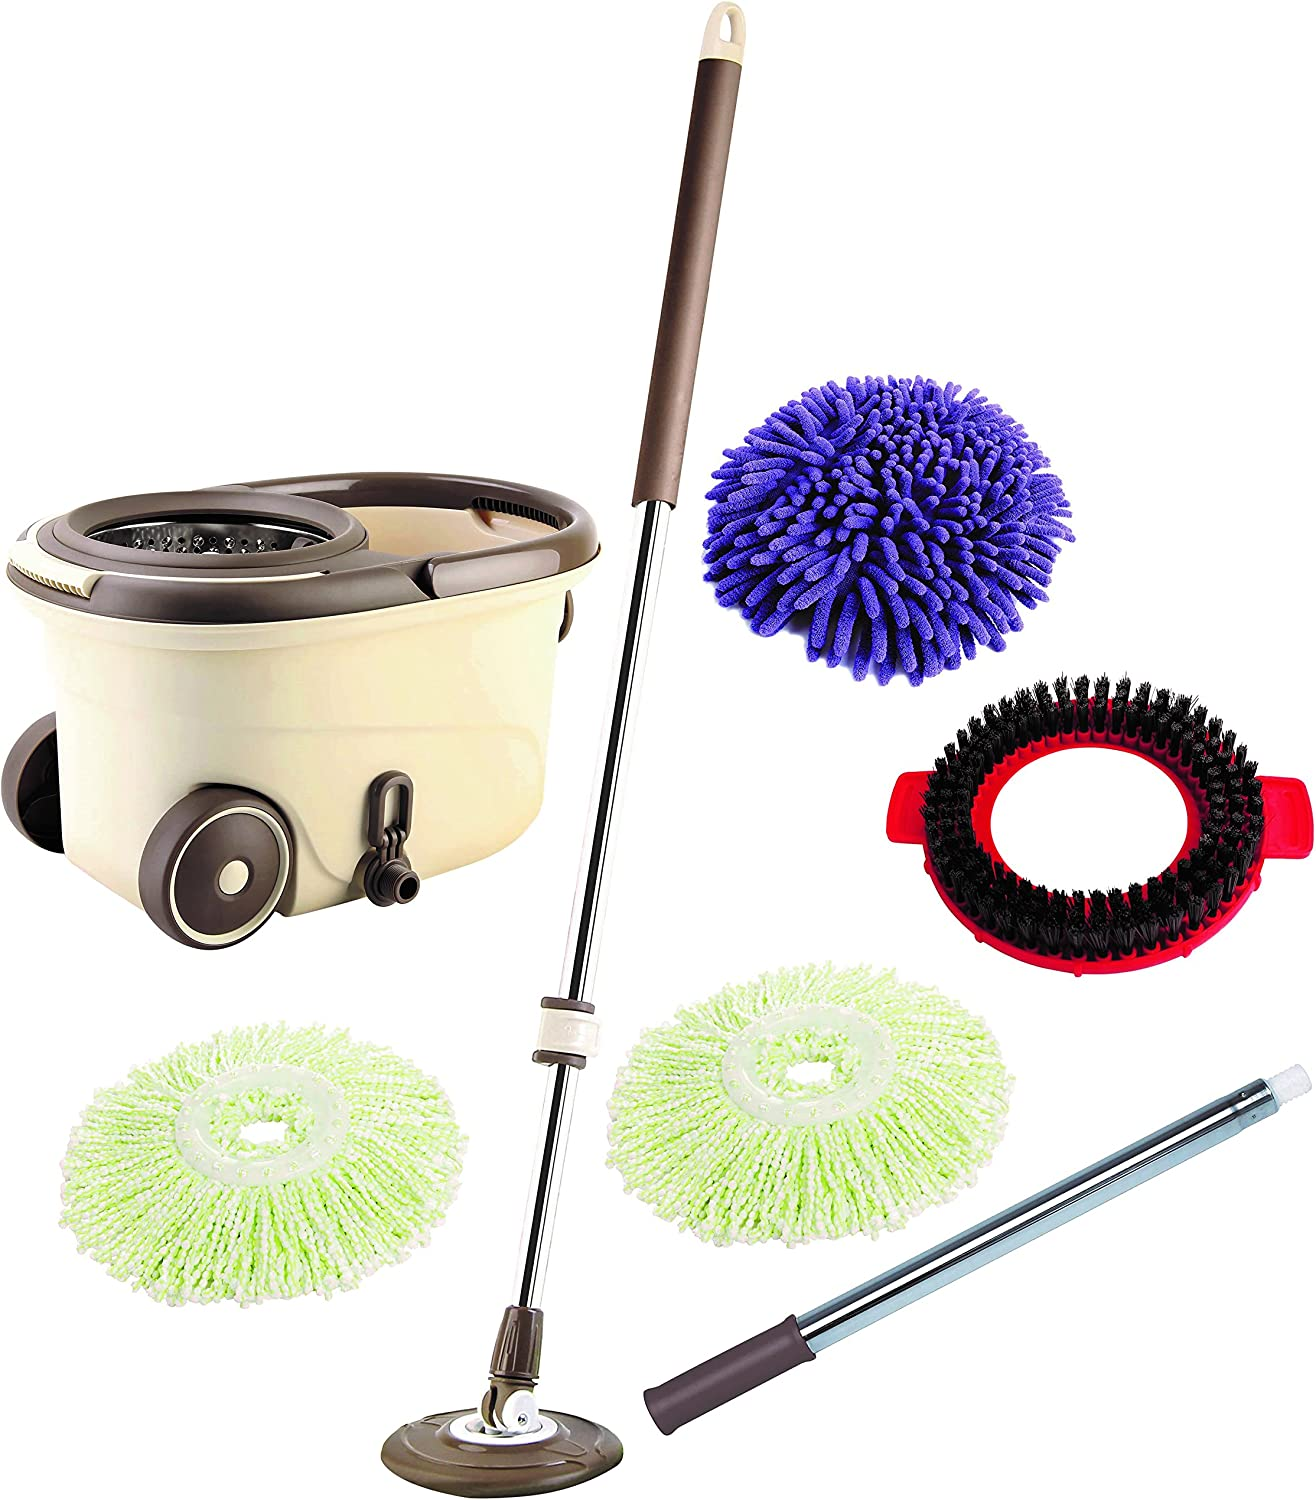 Consumer Reports Best Spin Mop